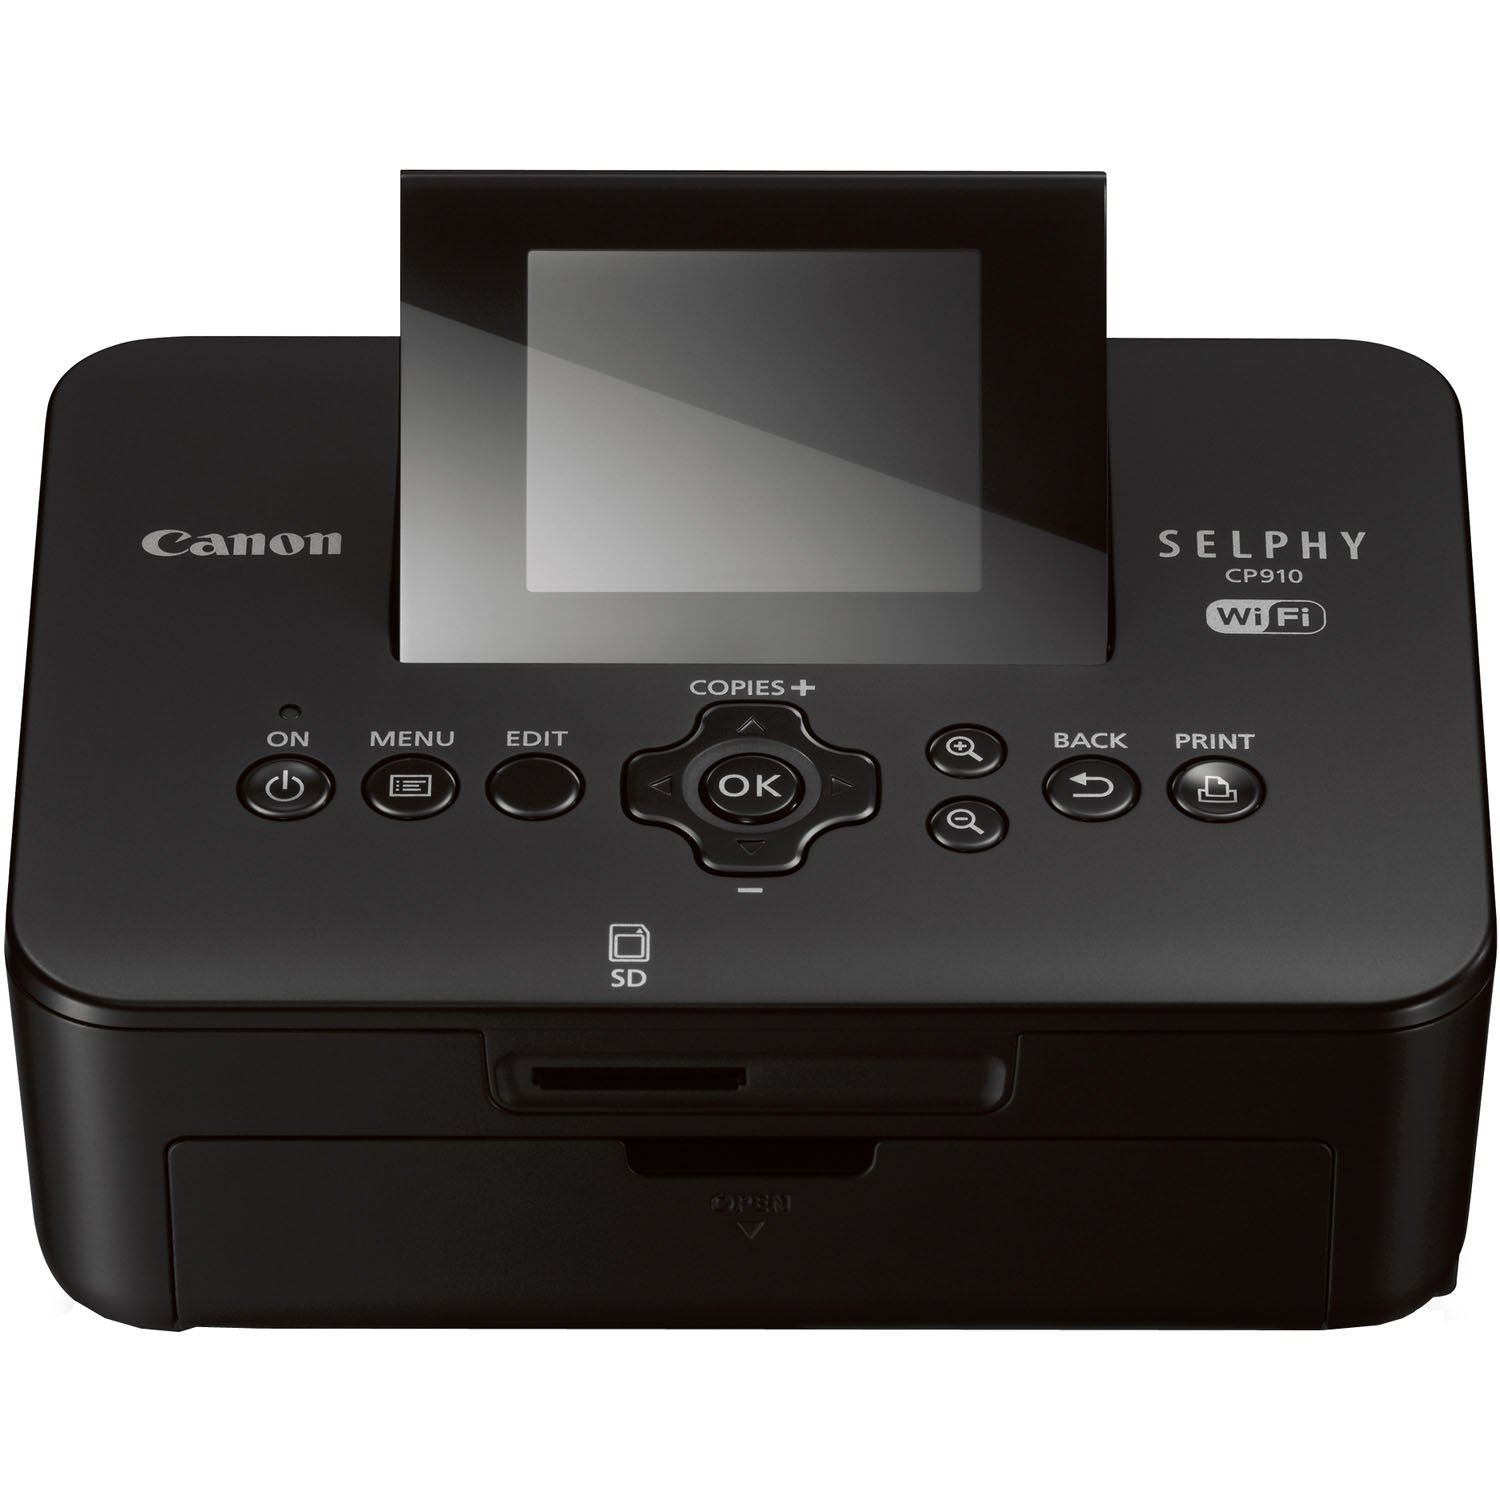 SELPHY CP910 DRIVERS DOWNLOAD